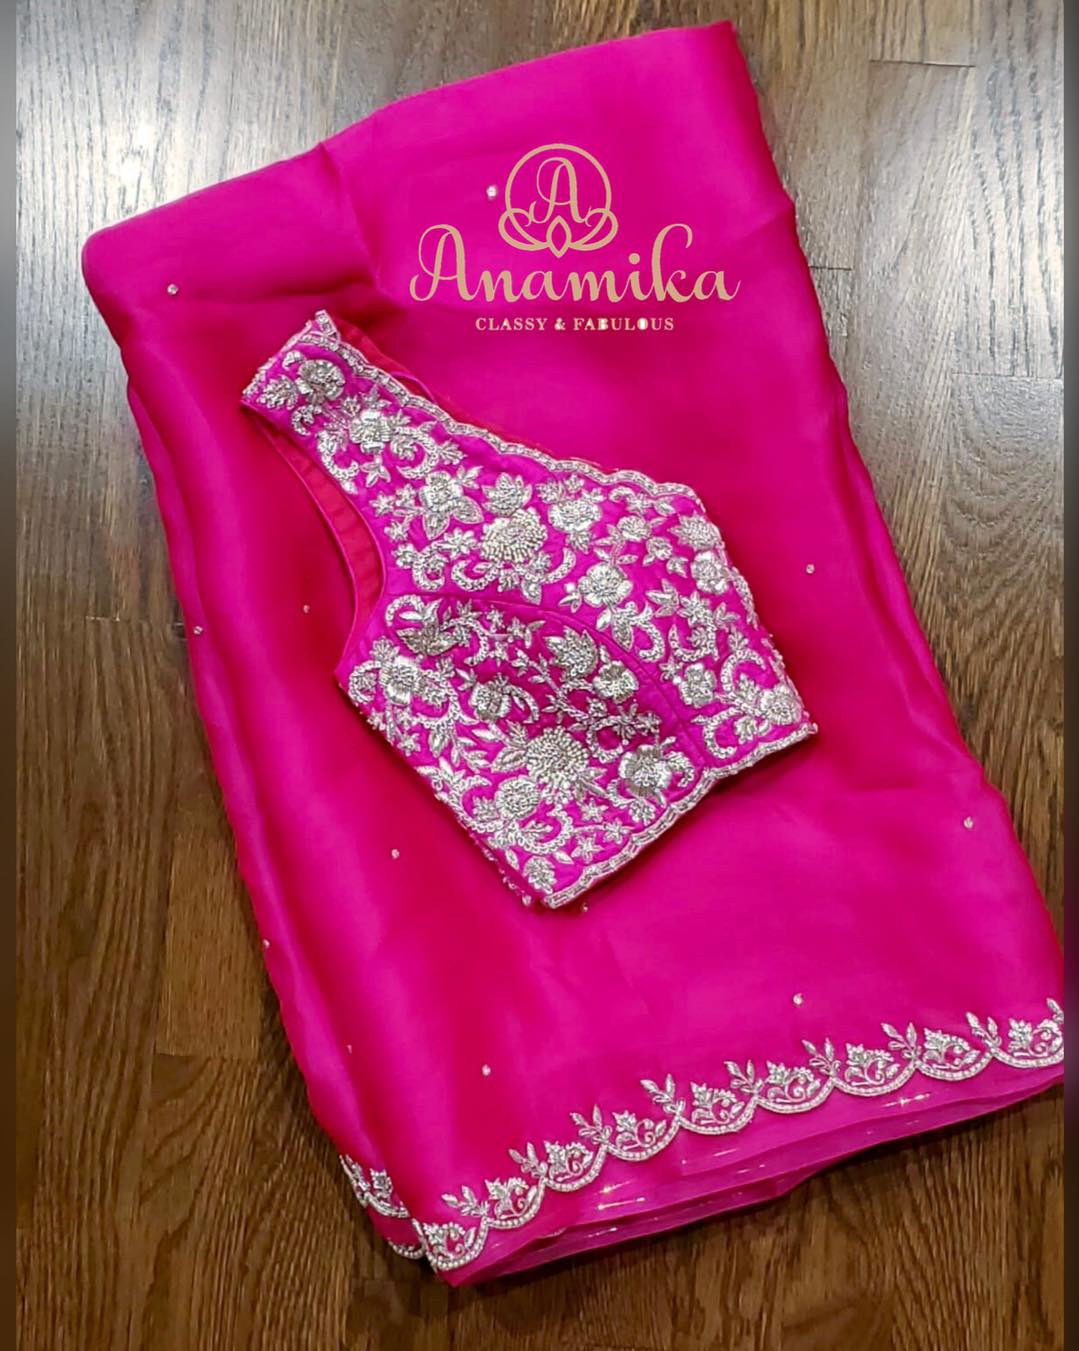 Did you say you were looking for a Cocktail saree ?? Check out this beautiful satin organza saree in a bright pink shade with silver zardosi work all over !! What's stunning